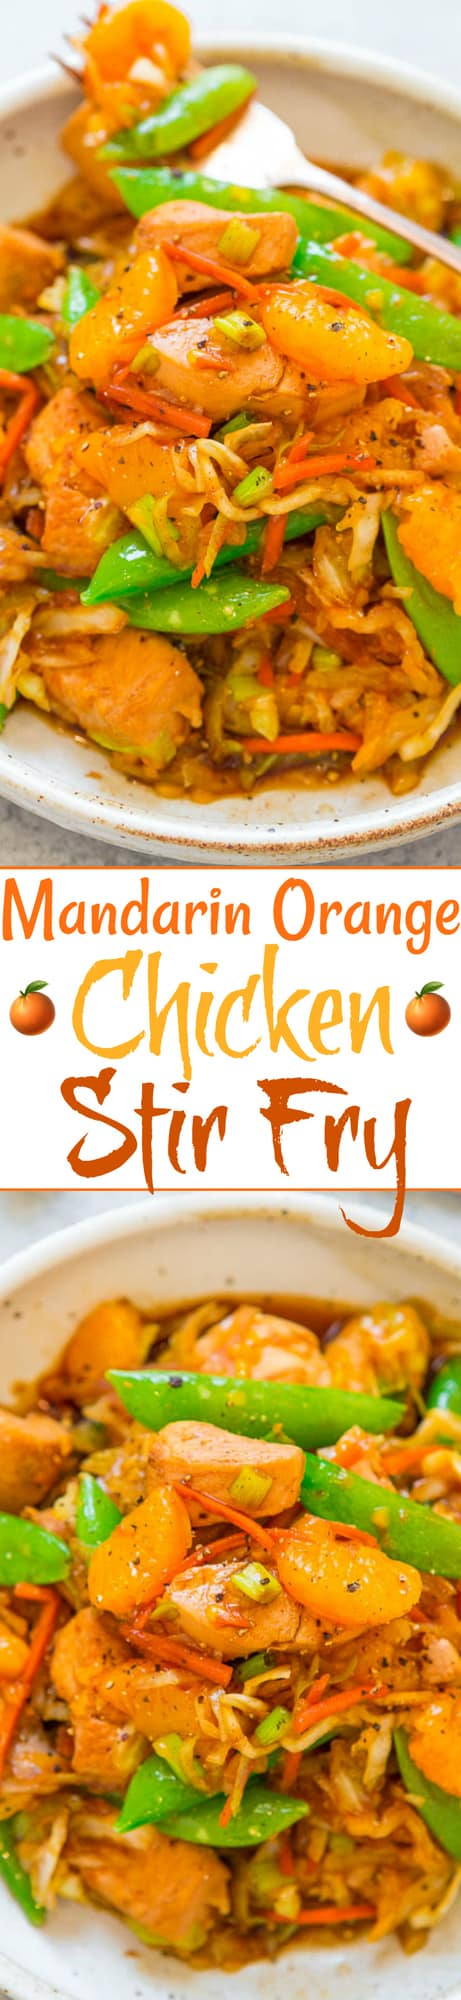 Mandarin Orange Chicken Stir Fry - An EASY Asian stir fry with tender chicken, juicy oranges, and veggies!! Skip takeout and make this ONE skillet recipe that's ready in 15 minutes and perfect for busy weeknights!!